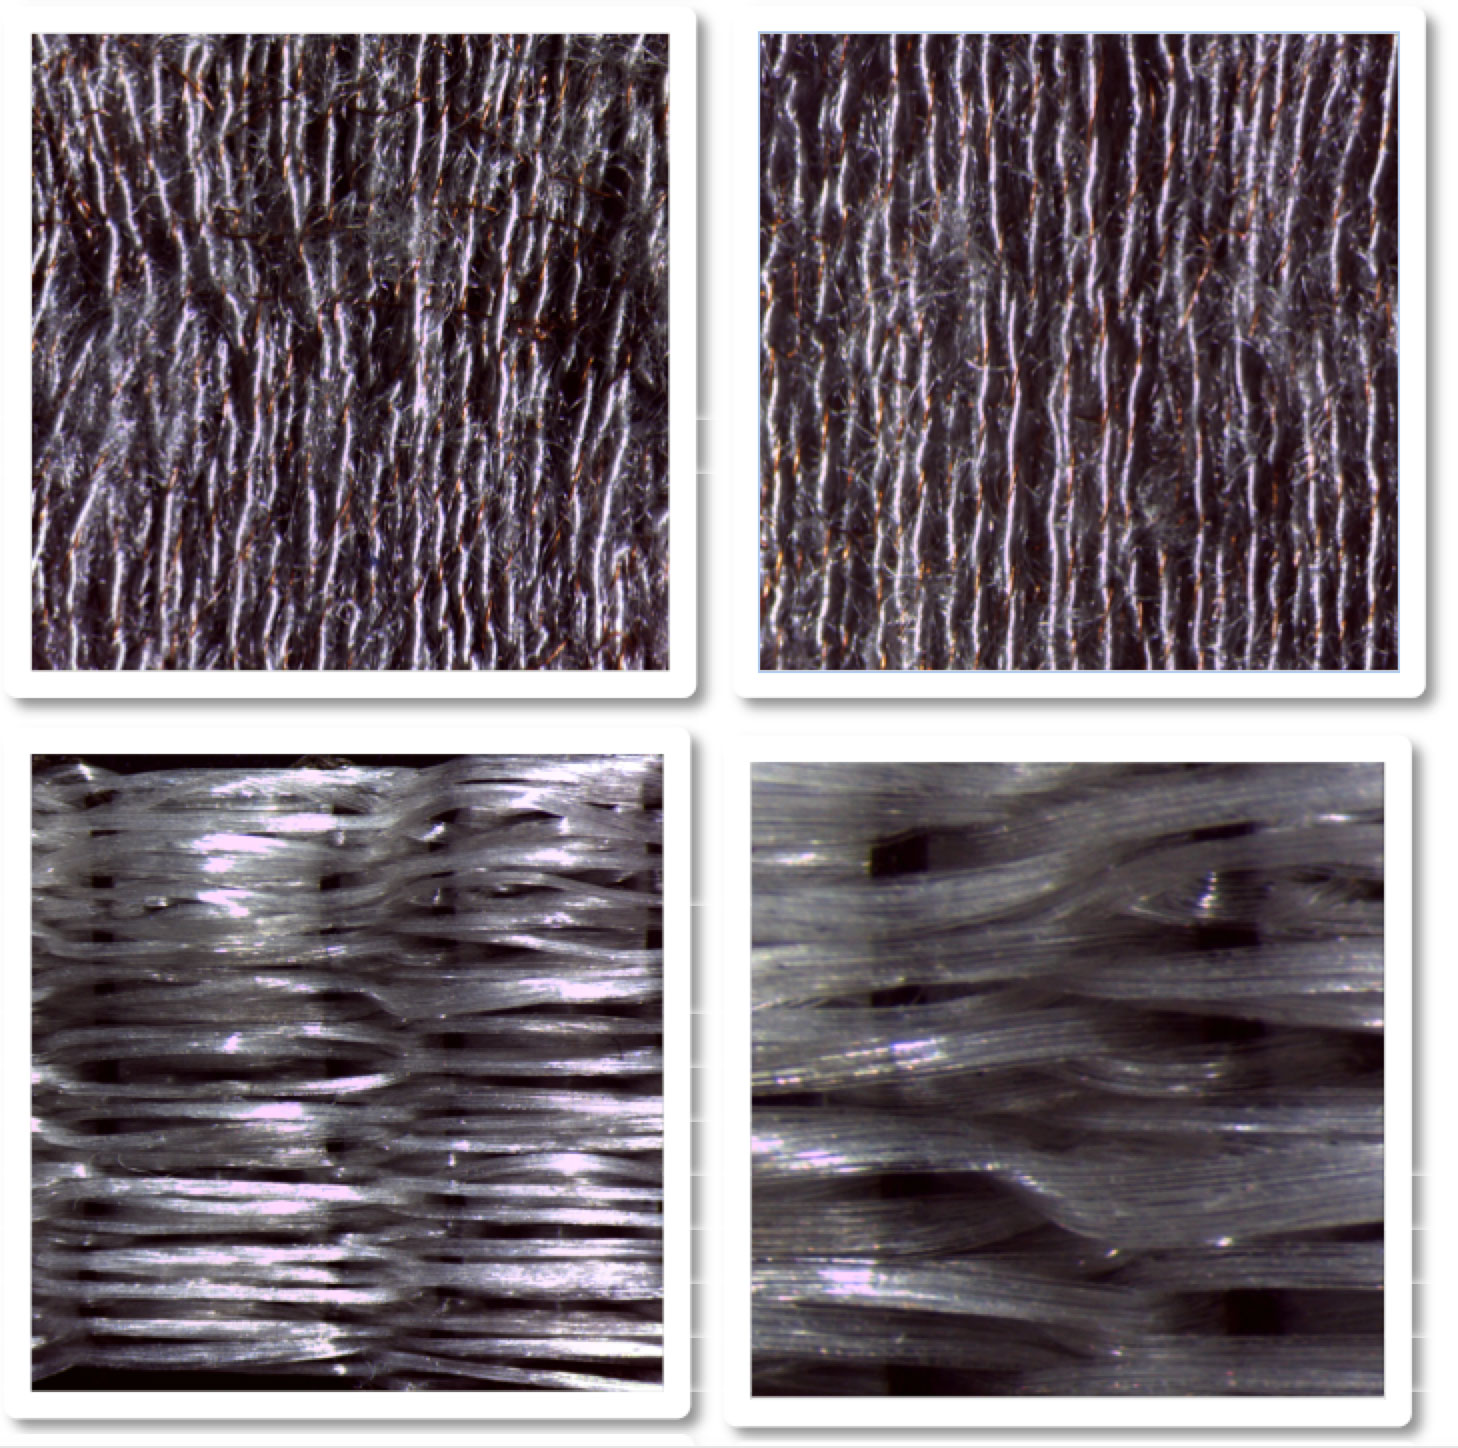 biomedical textile weave swatches